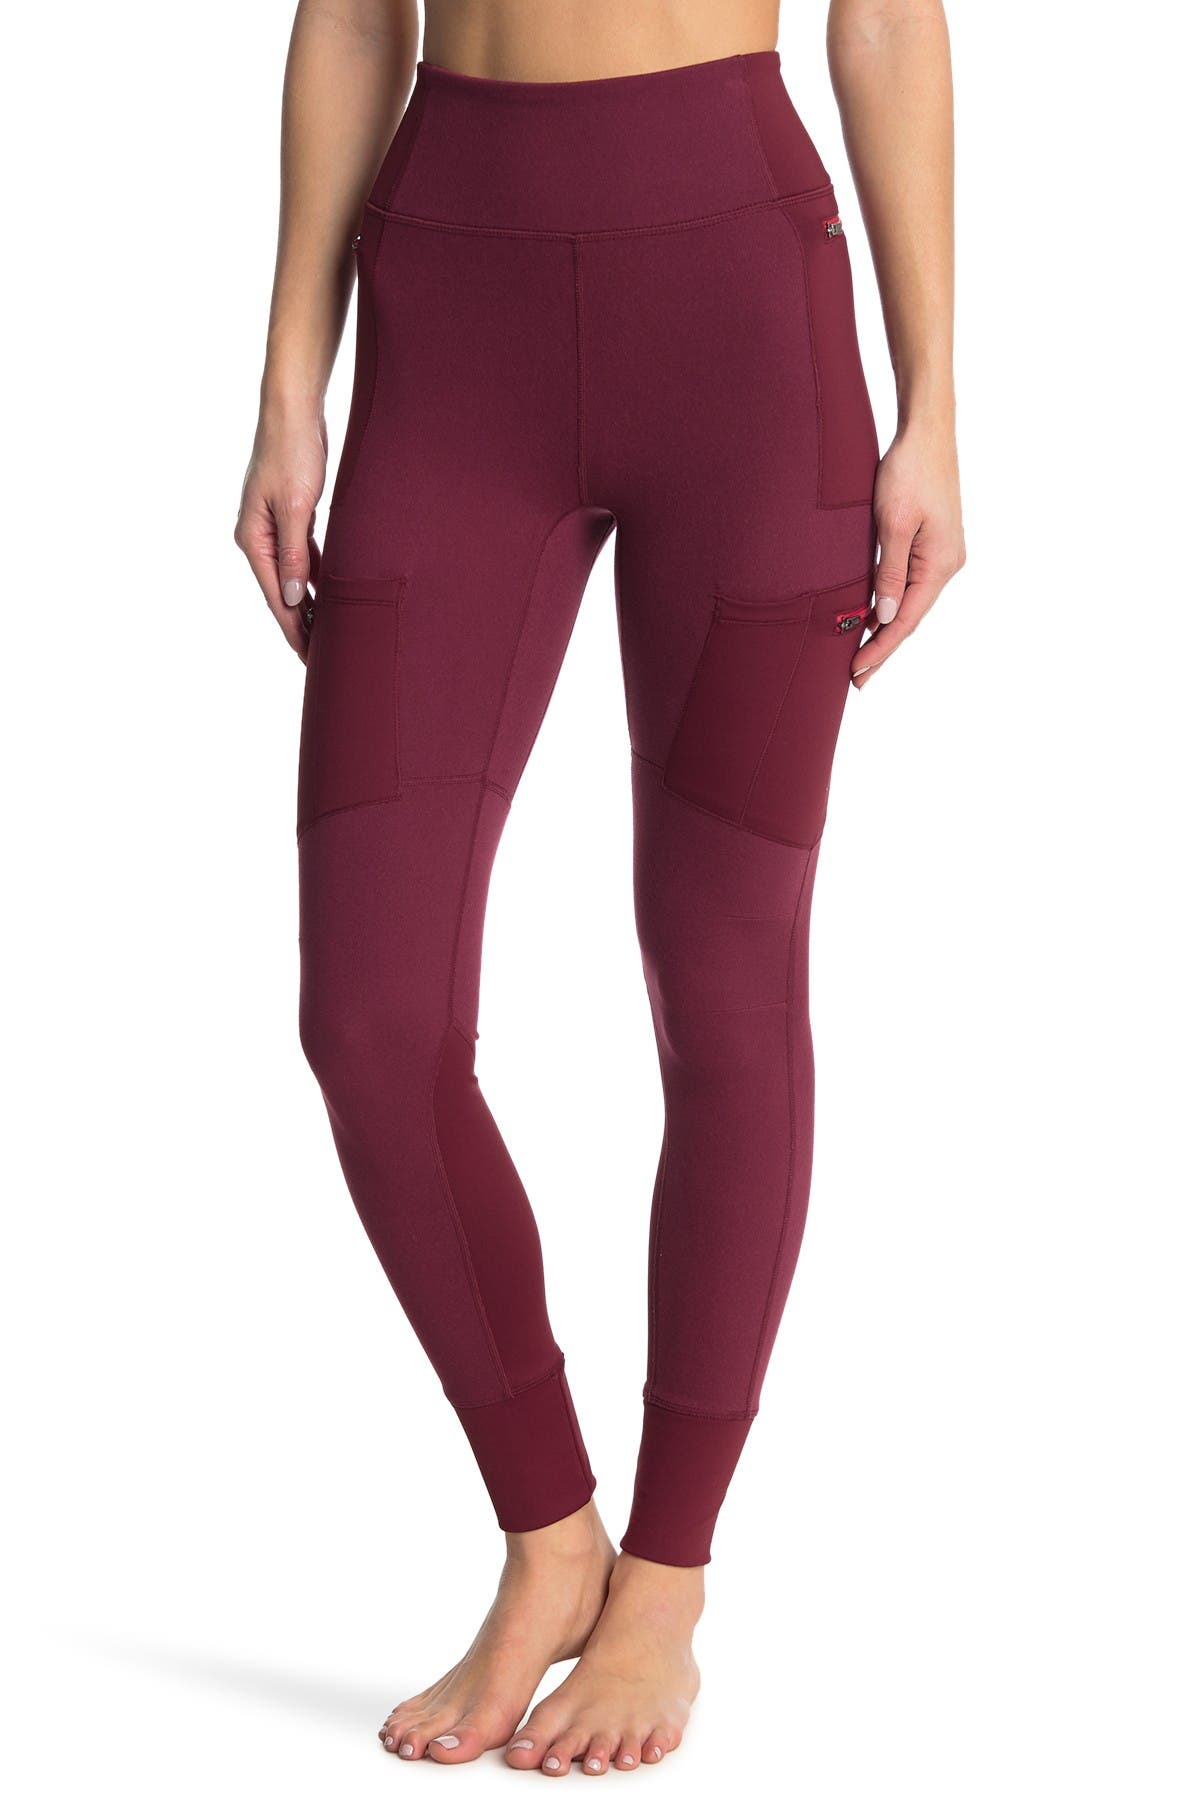 Image of Free People High-Rise Hit the Trail Leggings